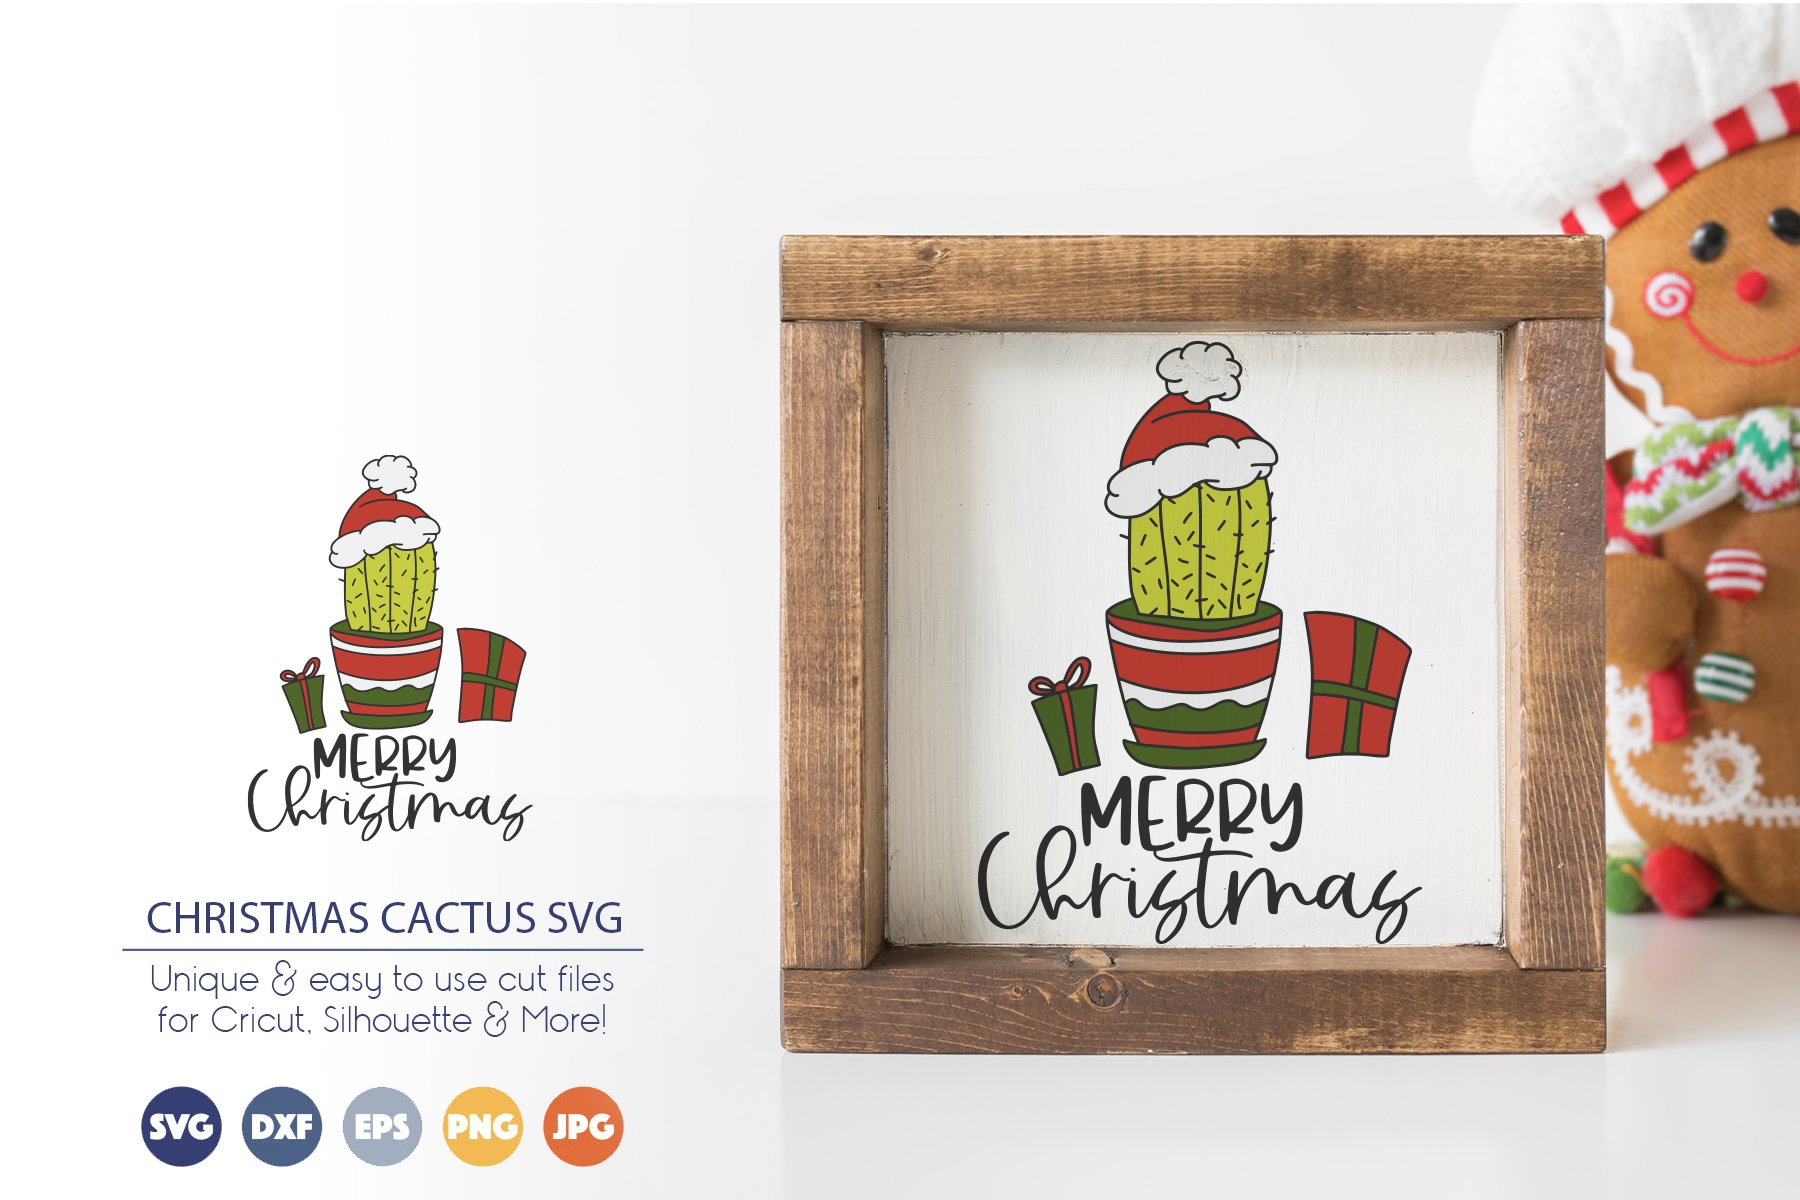 Merry Christmas SVG | Cactus SVG example image 1